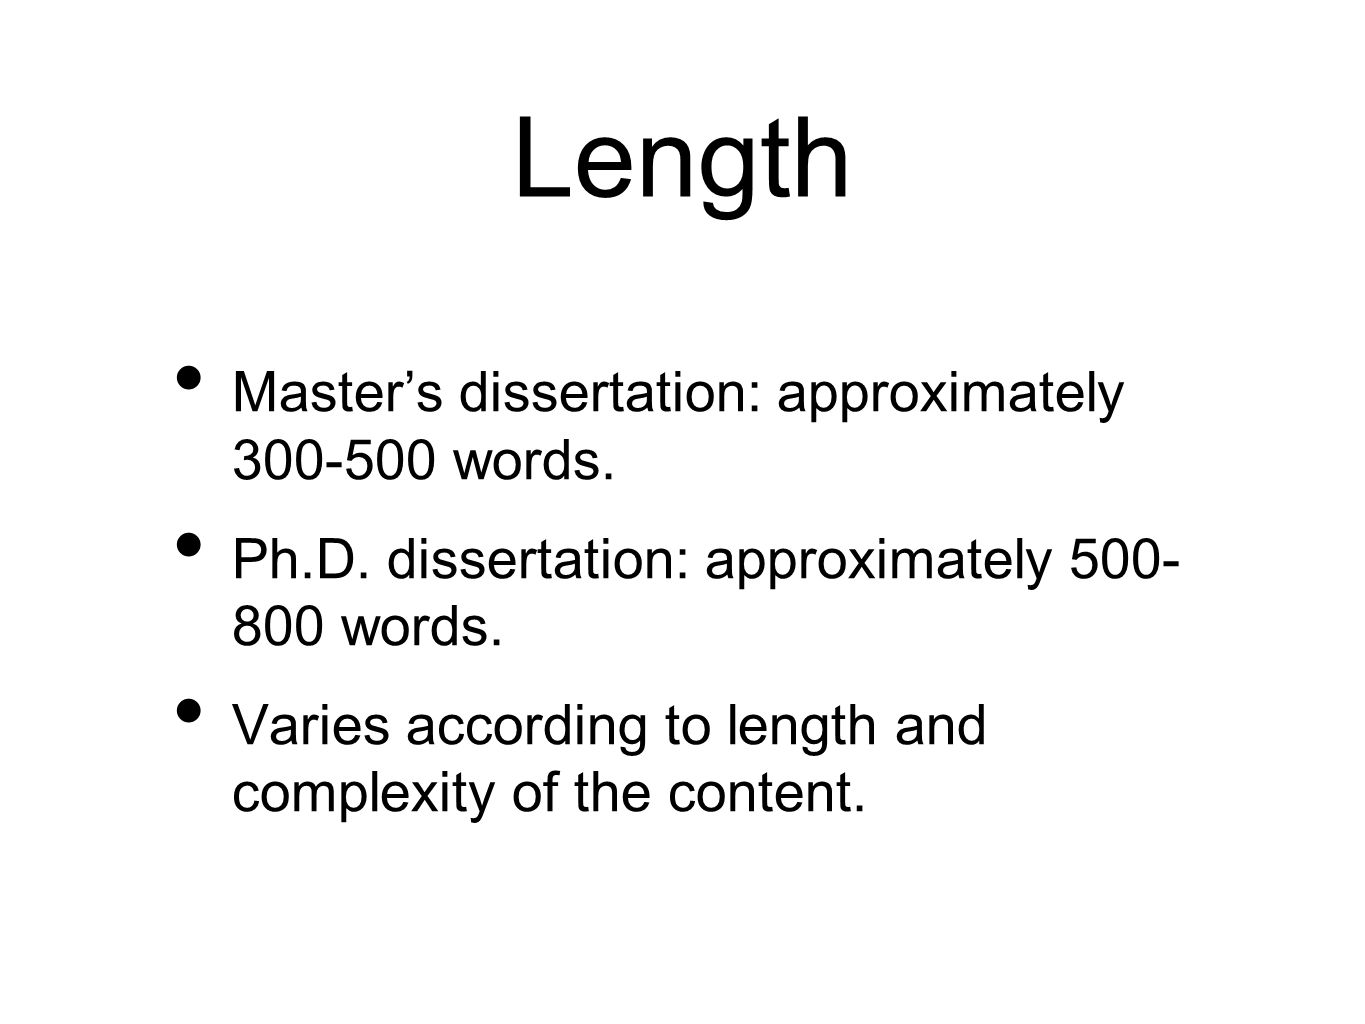 Length Master's dissertation: approximately 300-500 words.